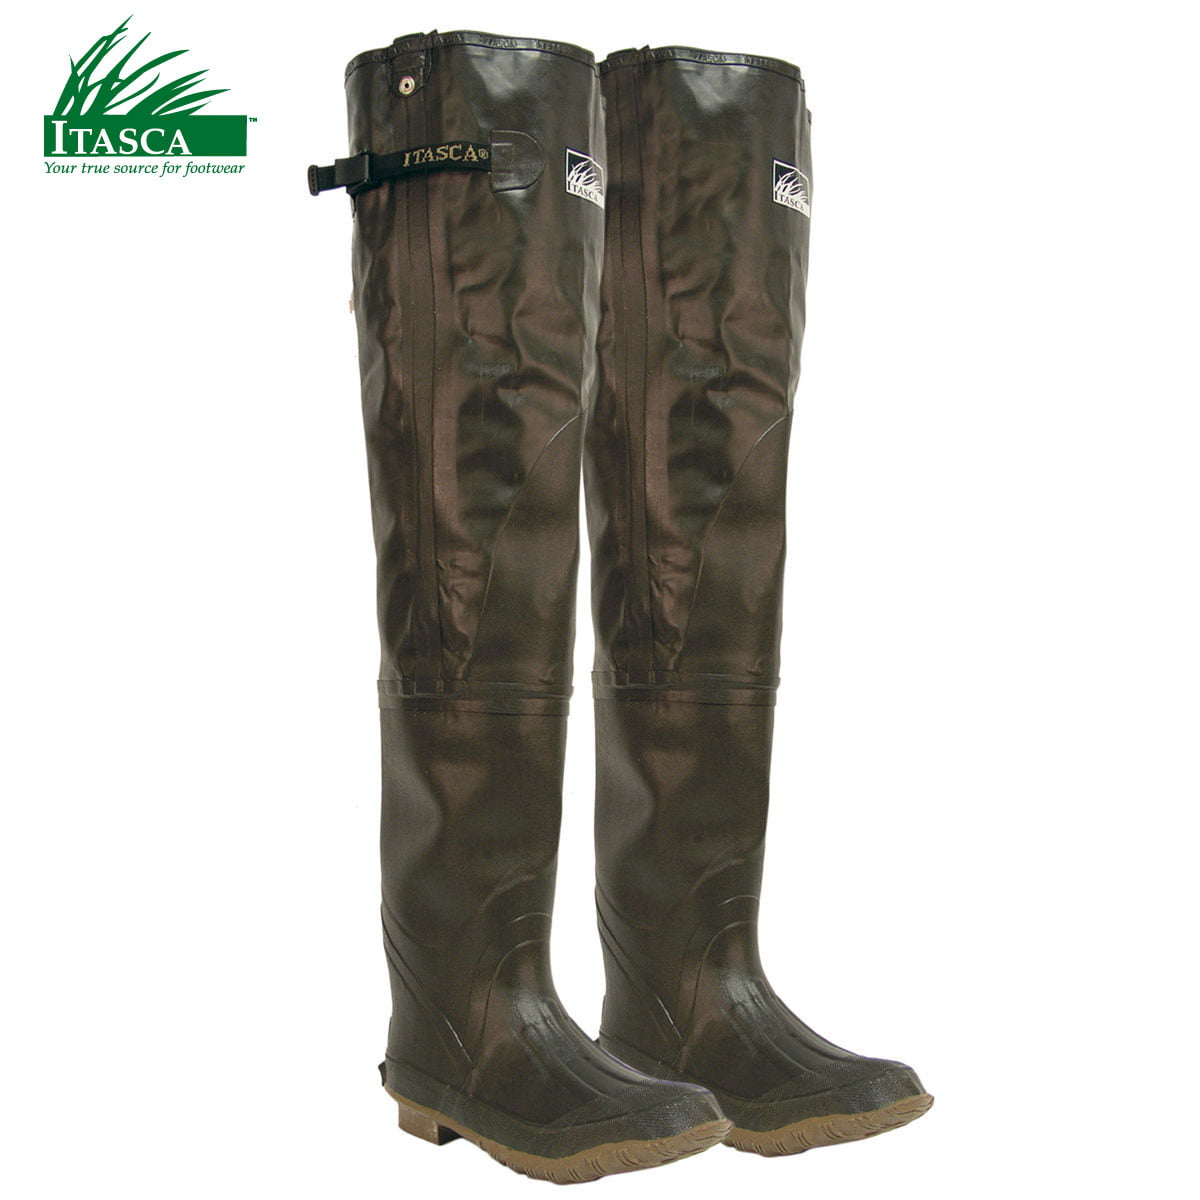 Itasca Rubber Men's Hip Waders (9)- Brown by Itasca